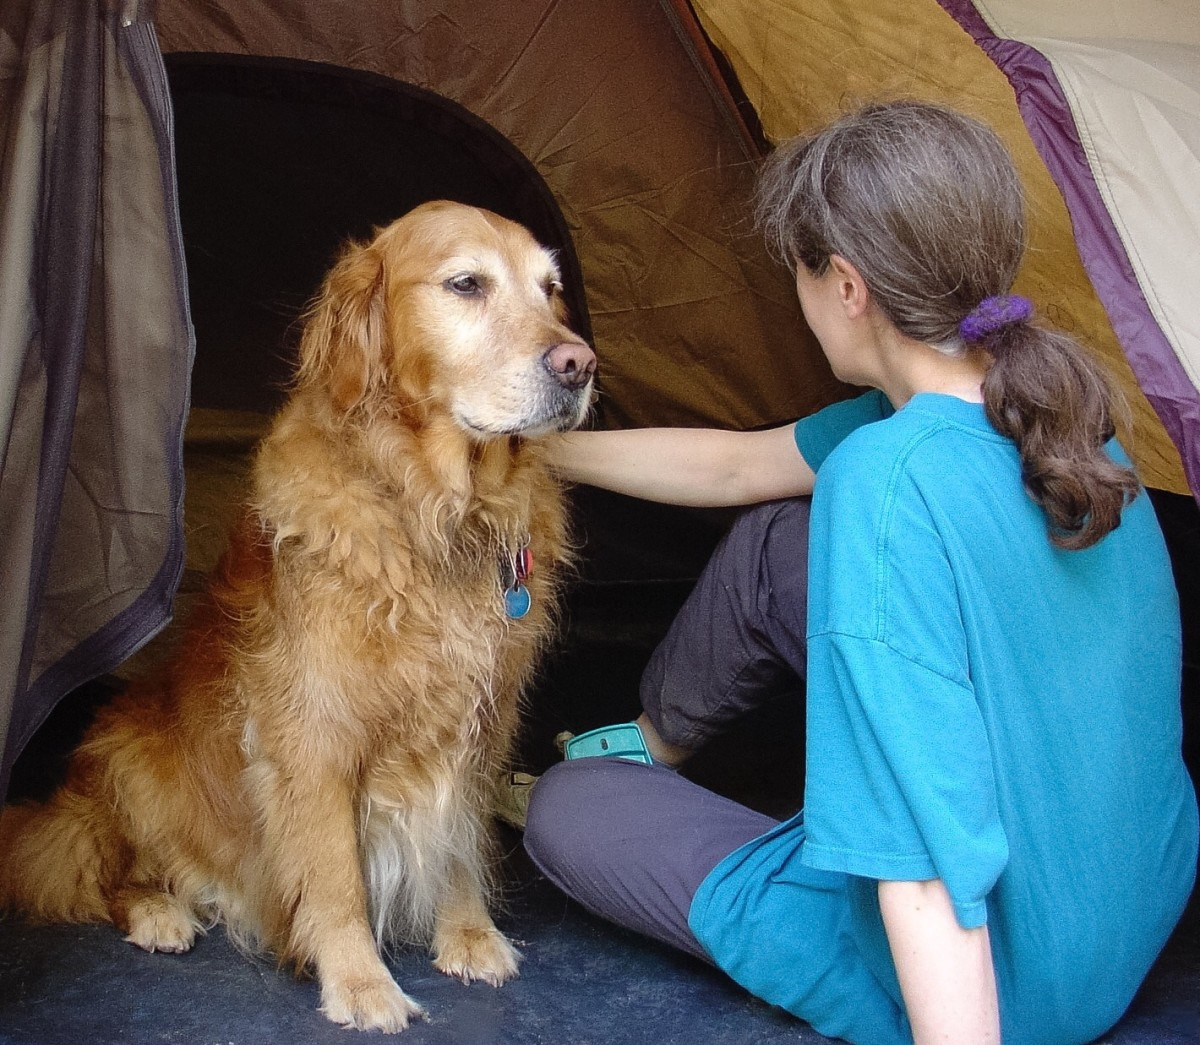 Rapamycin from Bacteria for Anti-Aging in Dogs and Humans